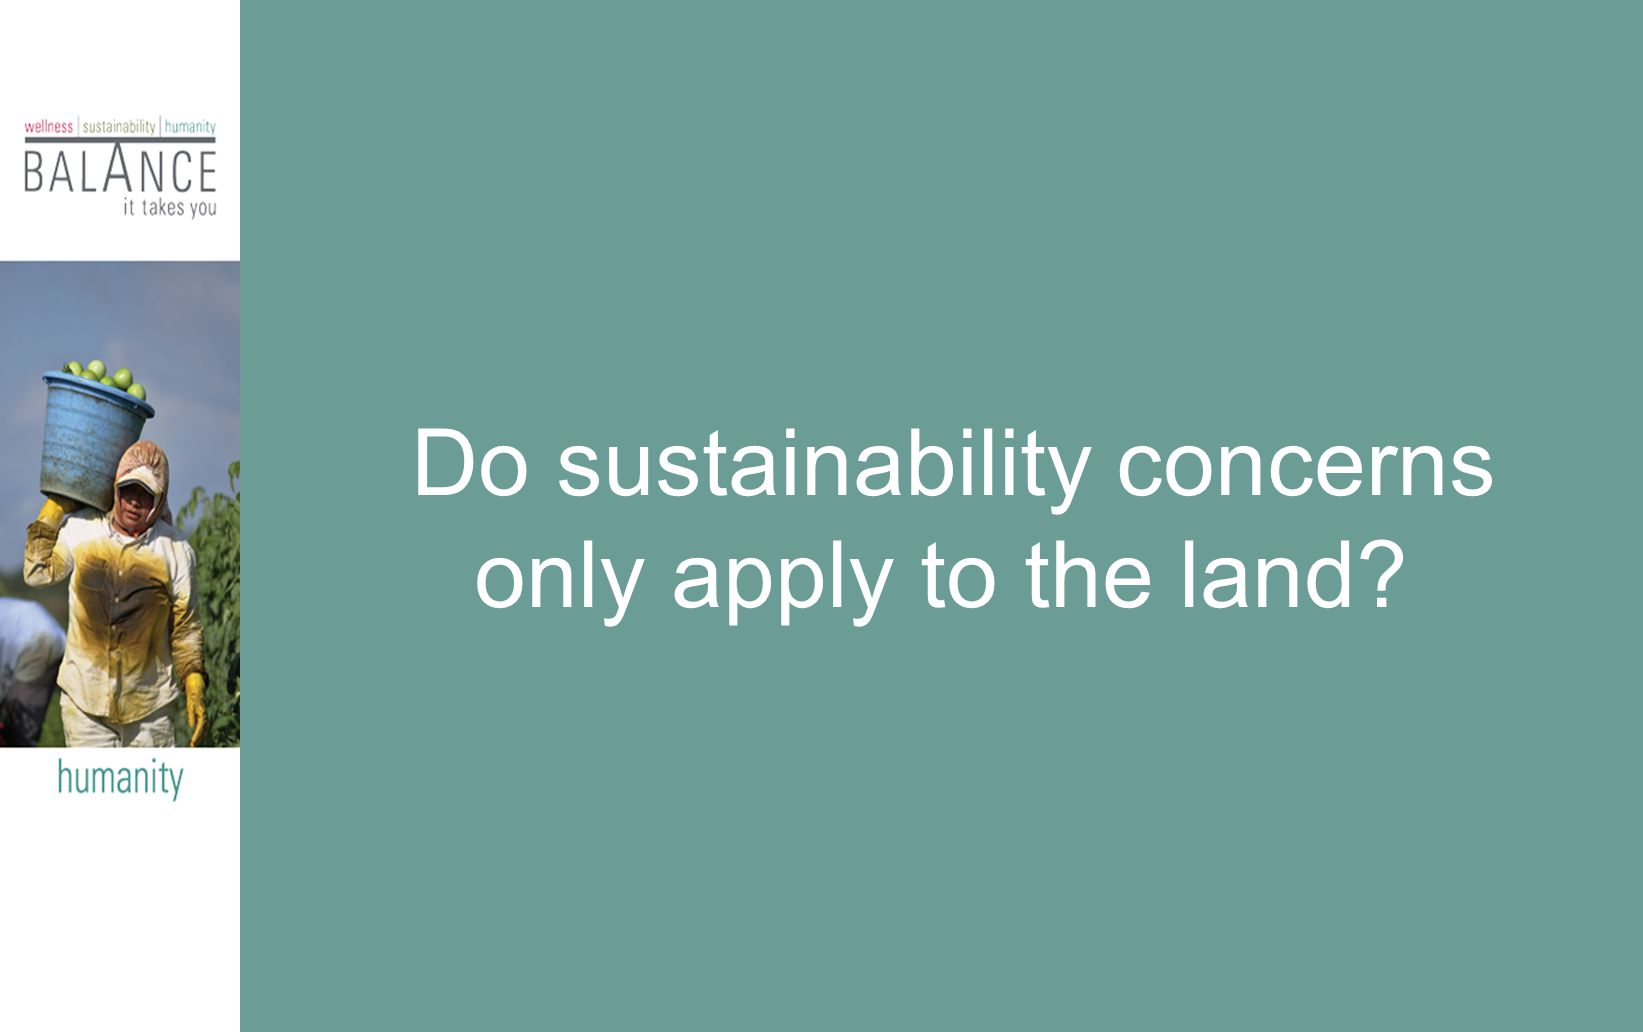 Do sustainability concerns only apply to the land